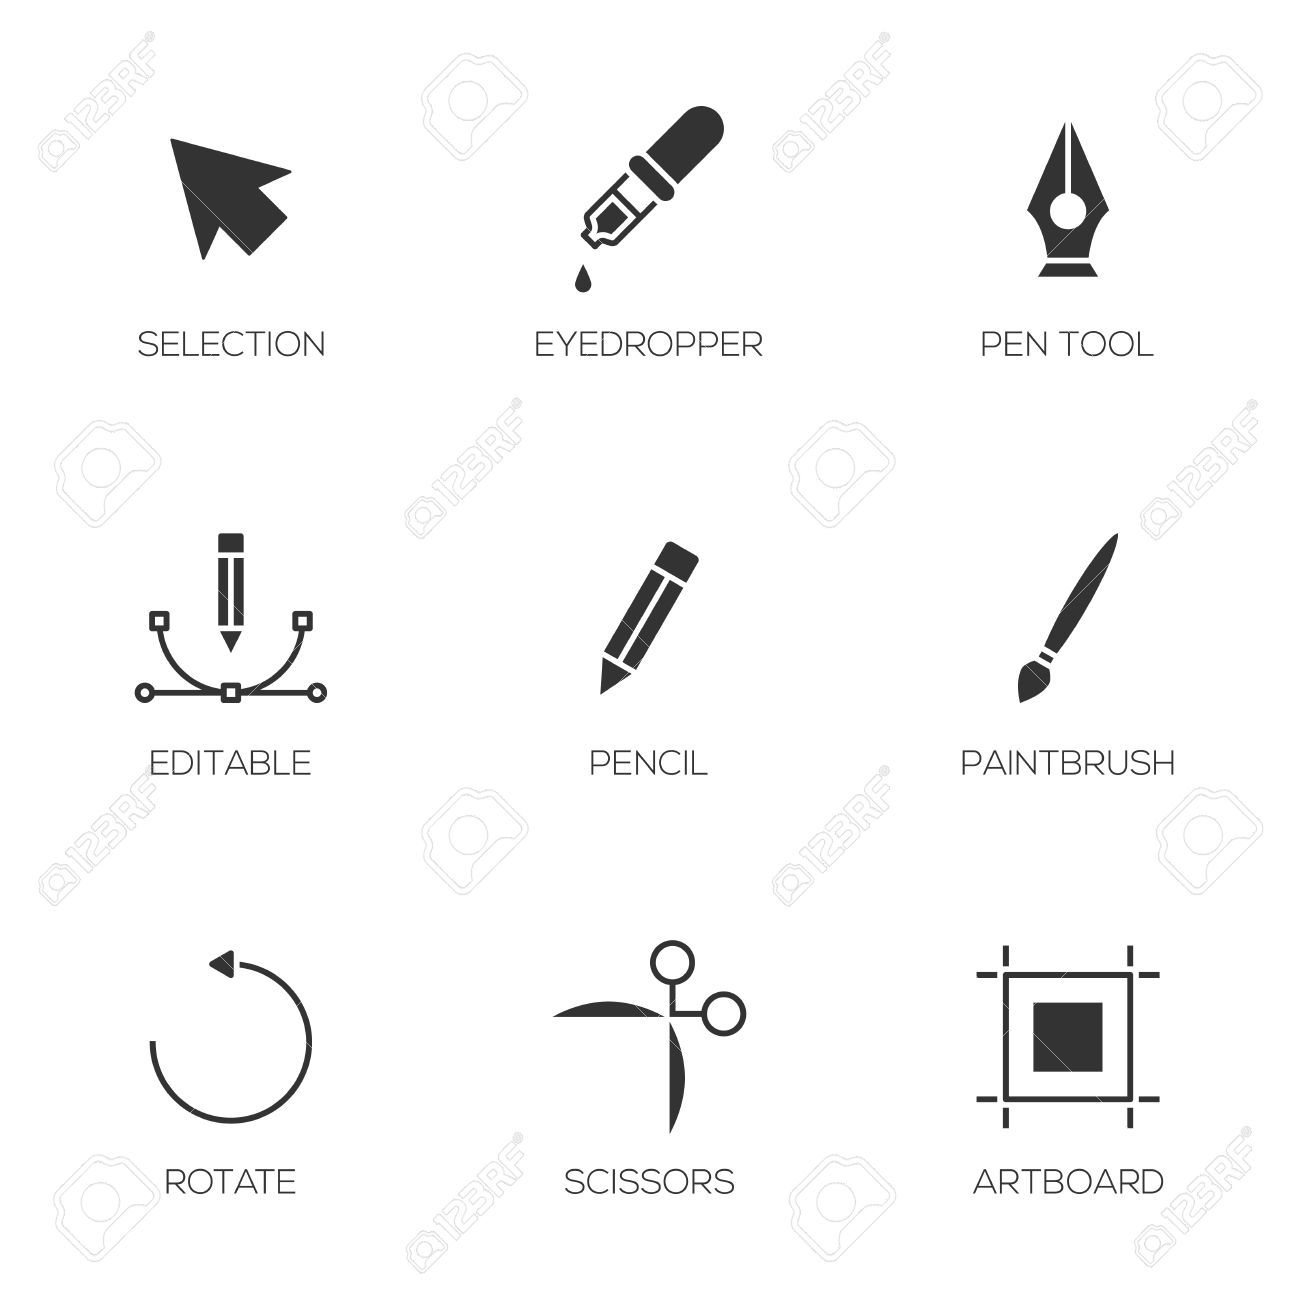 graphic designer tools icons vector illustrator tools royalty free